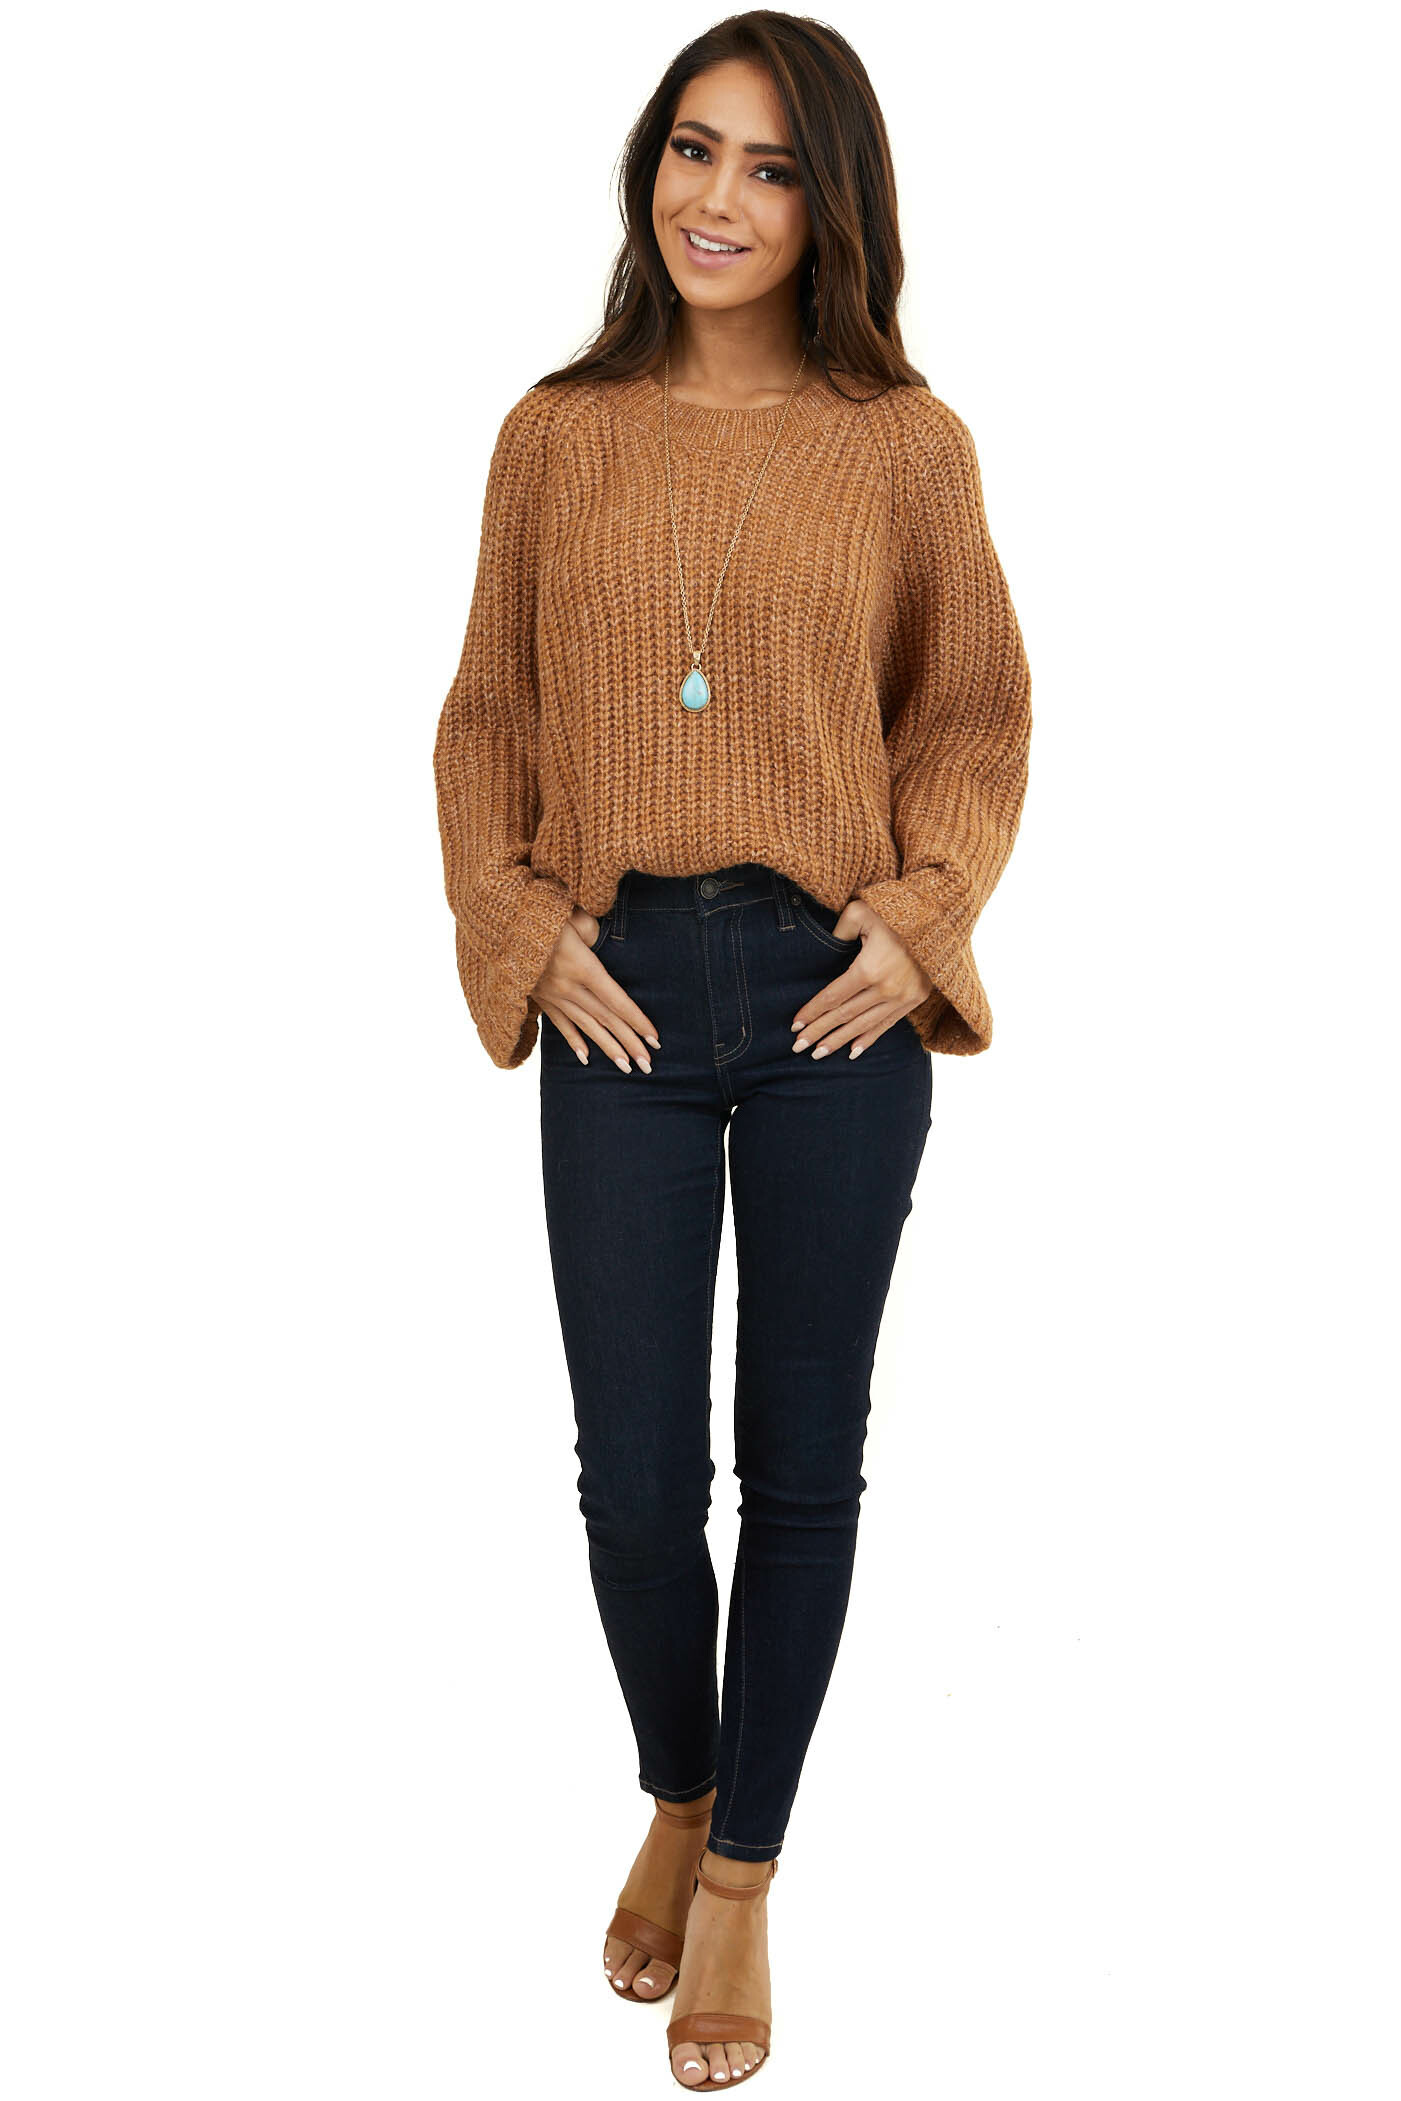 Caramel Oversized Sweater with Long Cuffed Flowy Sleeves